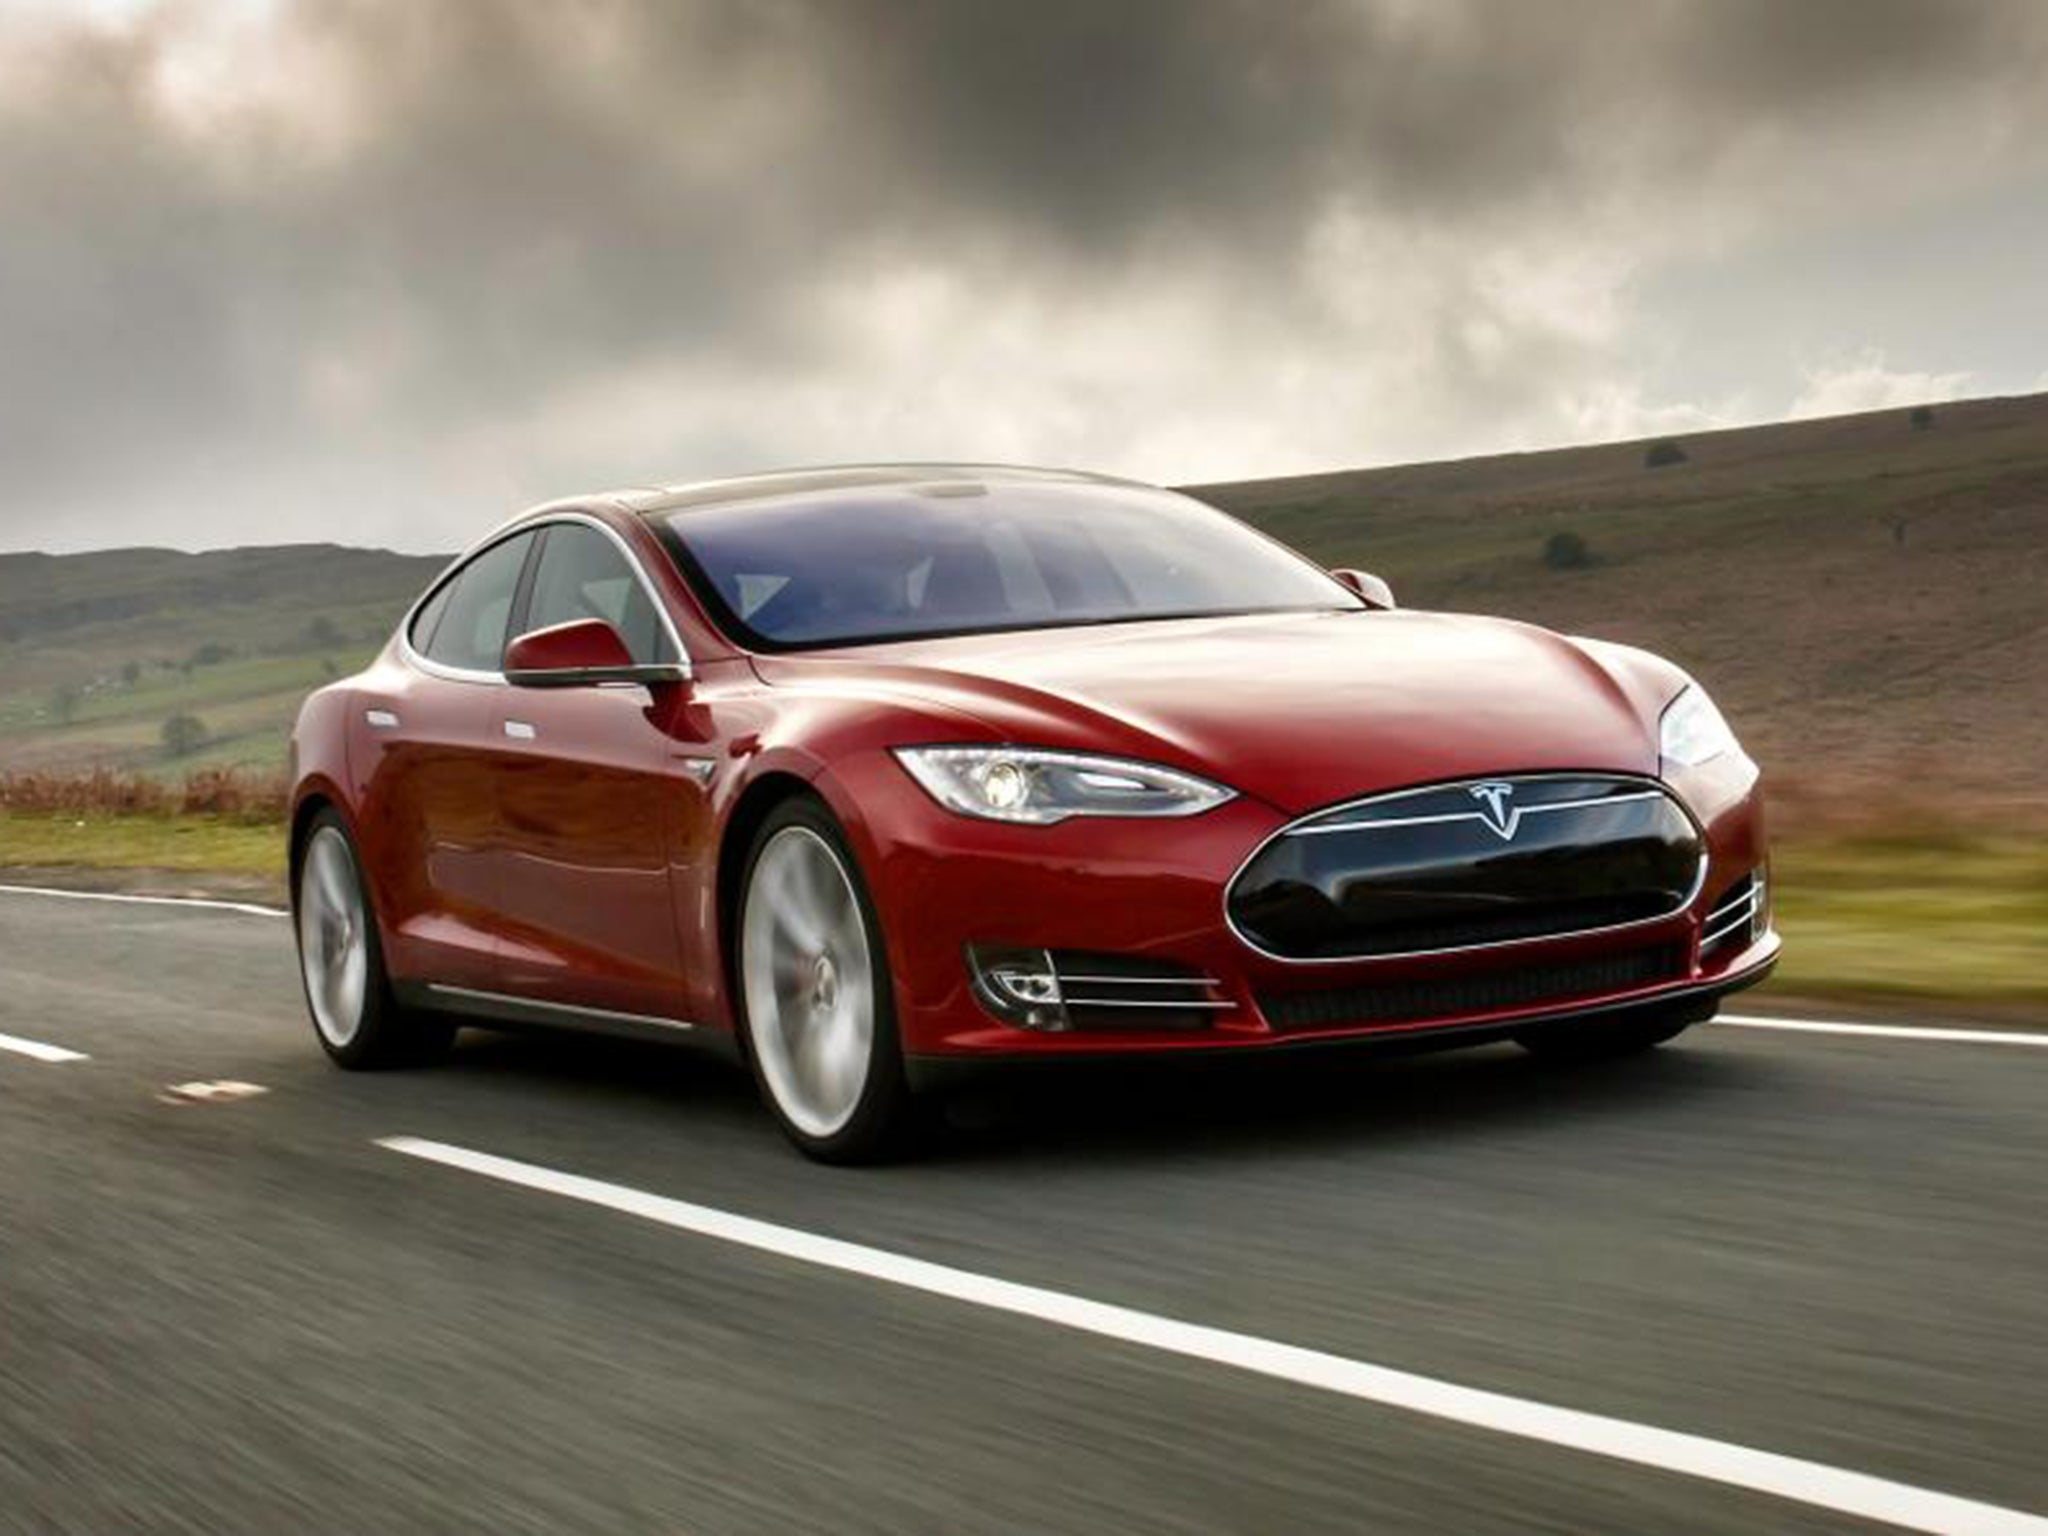 Cool Tesla Model S 70 Car Review Hitech Luxury Saloon